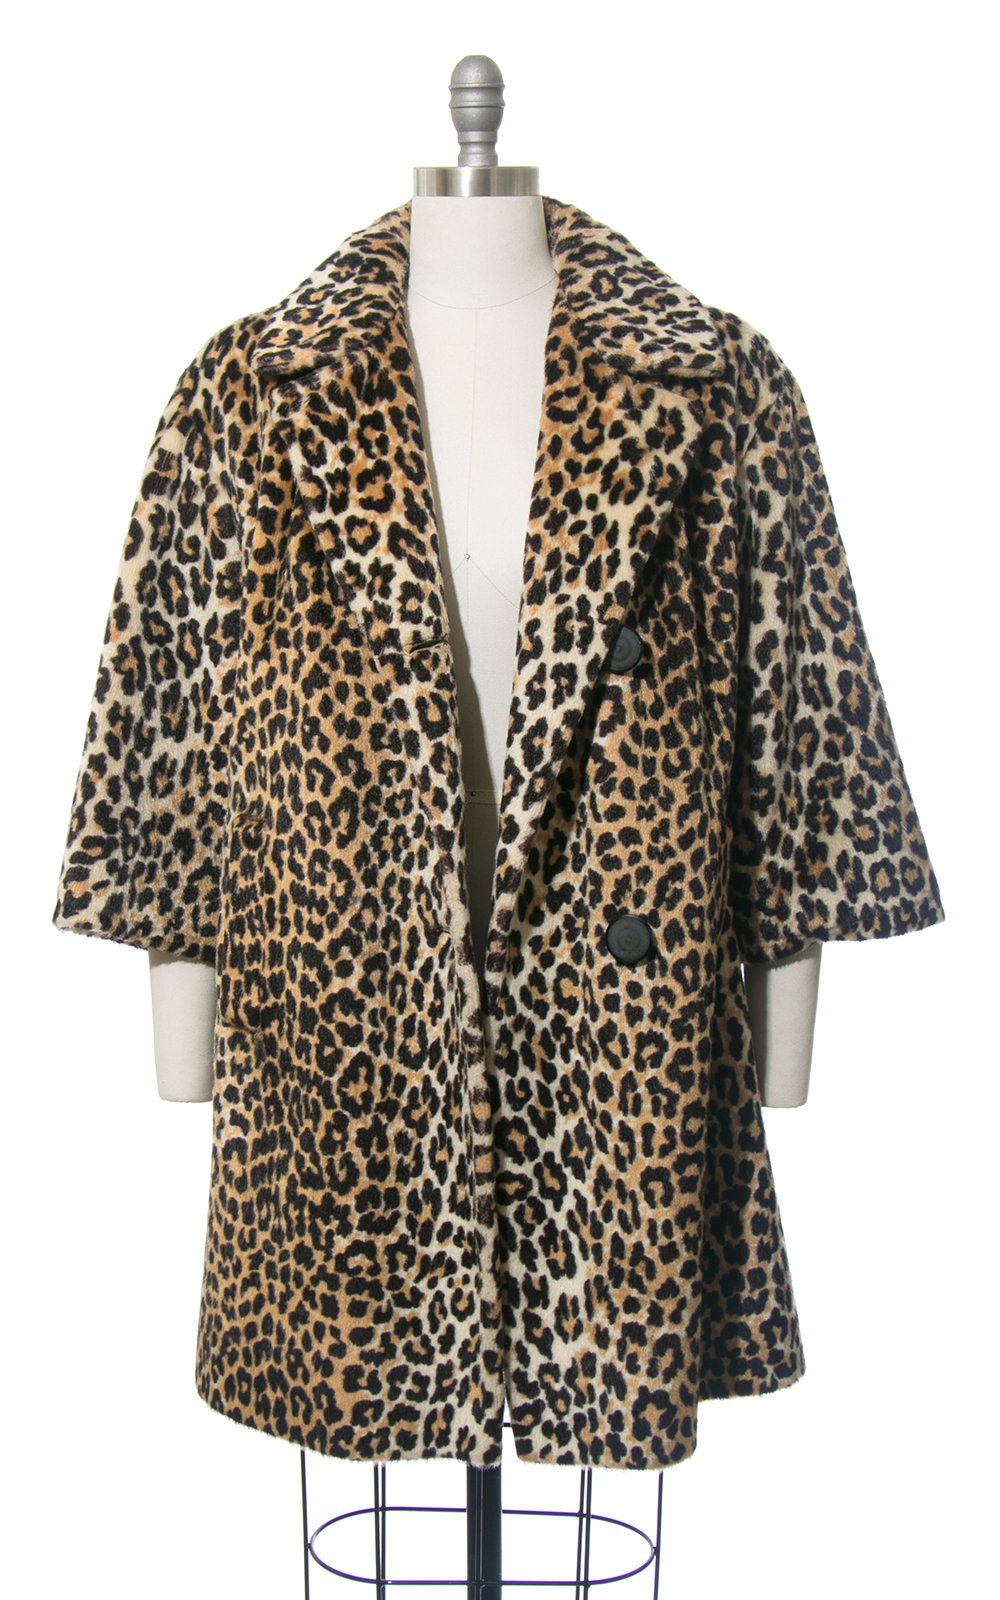 Vintage 1960s Coat | 60s Leopard Print Faux Fur Plush Animal Print Winter Swing Coat (medium/large)